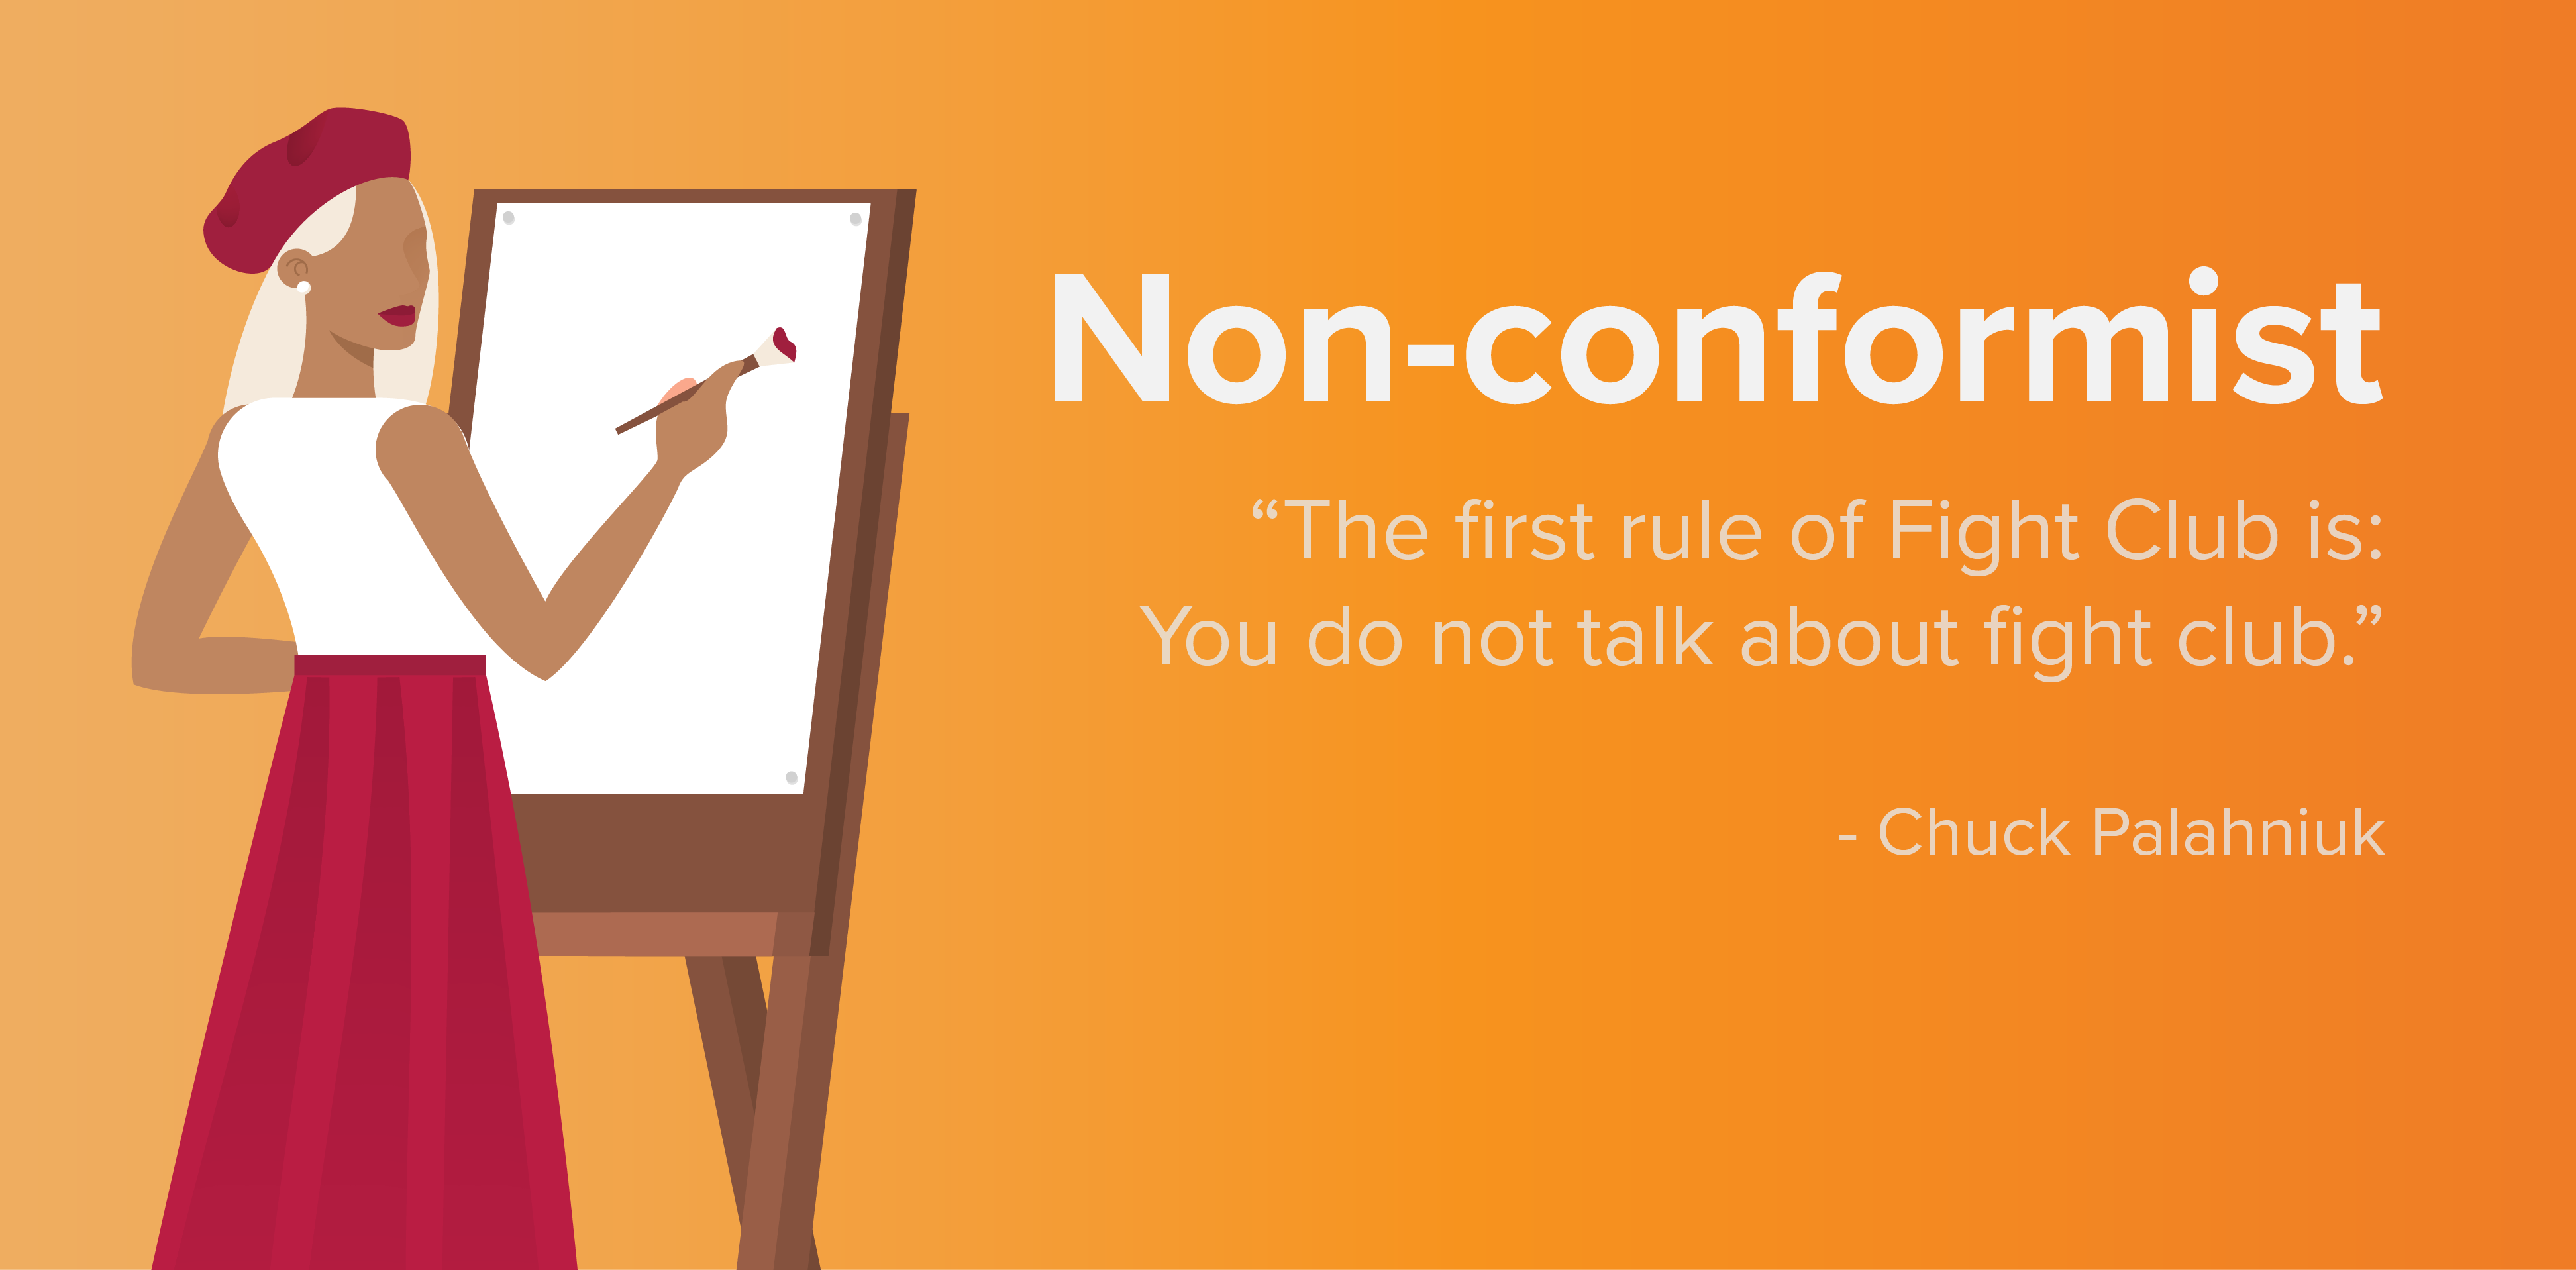 """Non-conformist. """"The first rule of Fight Club is: You do not talk about fight club."""" -Chuck Palahniuk"""